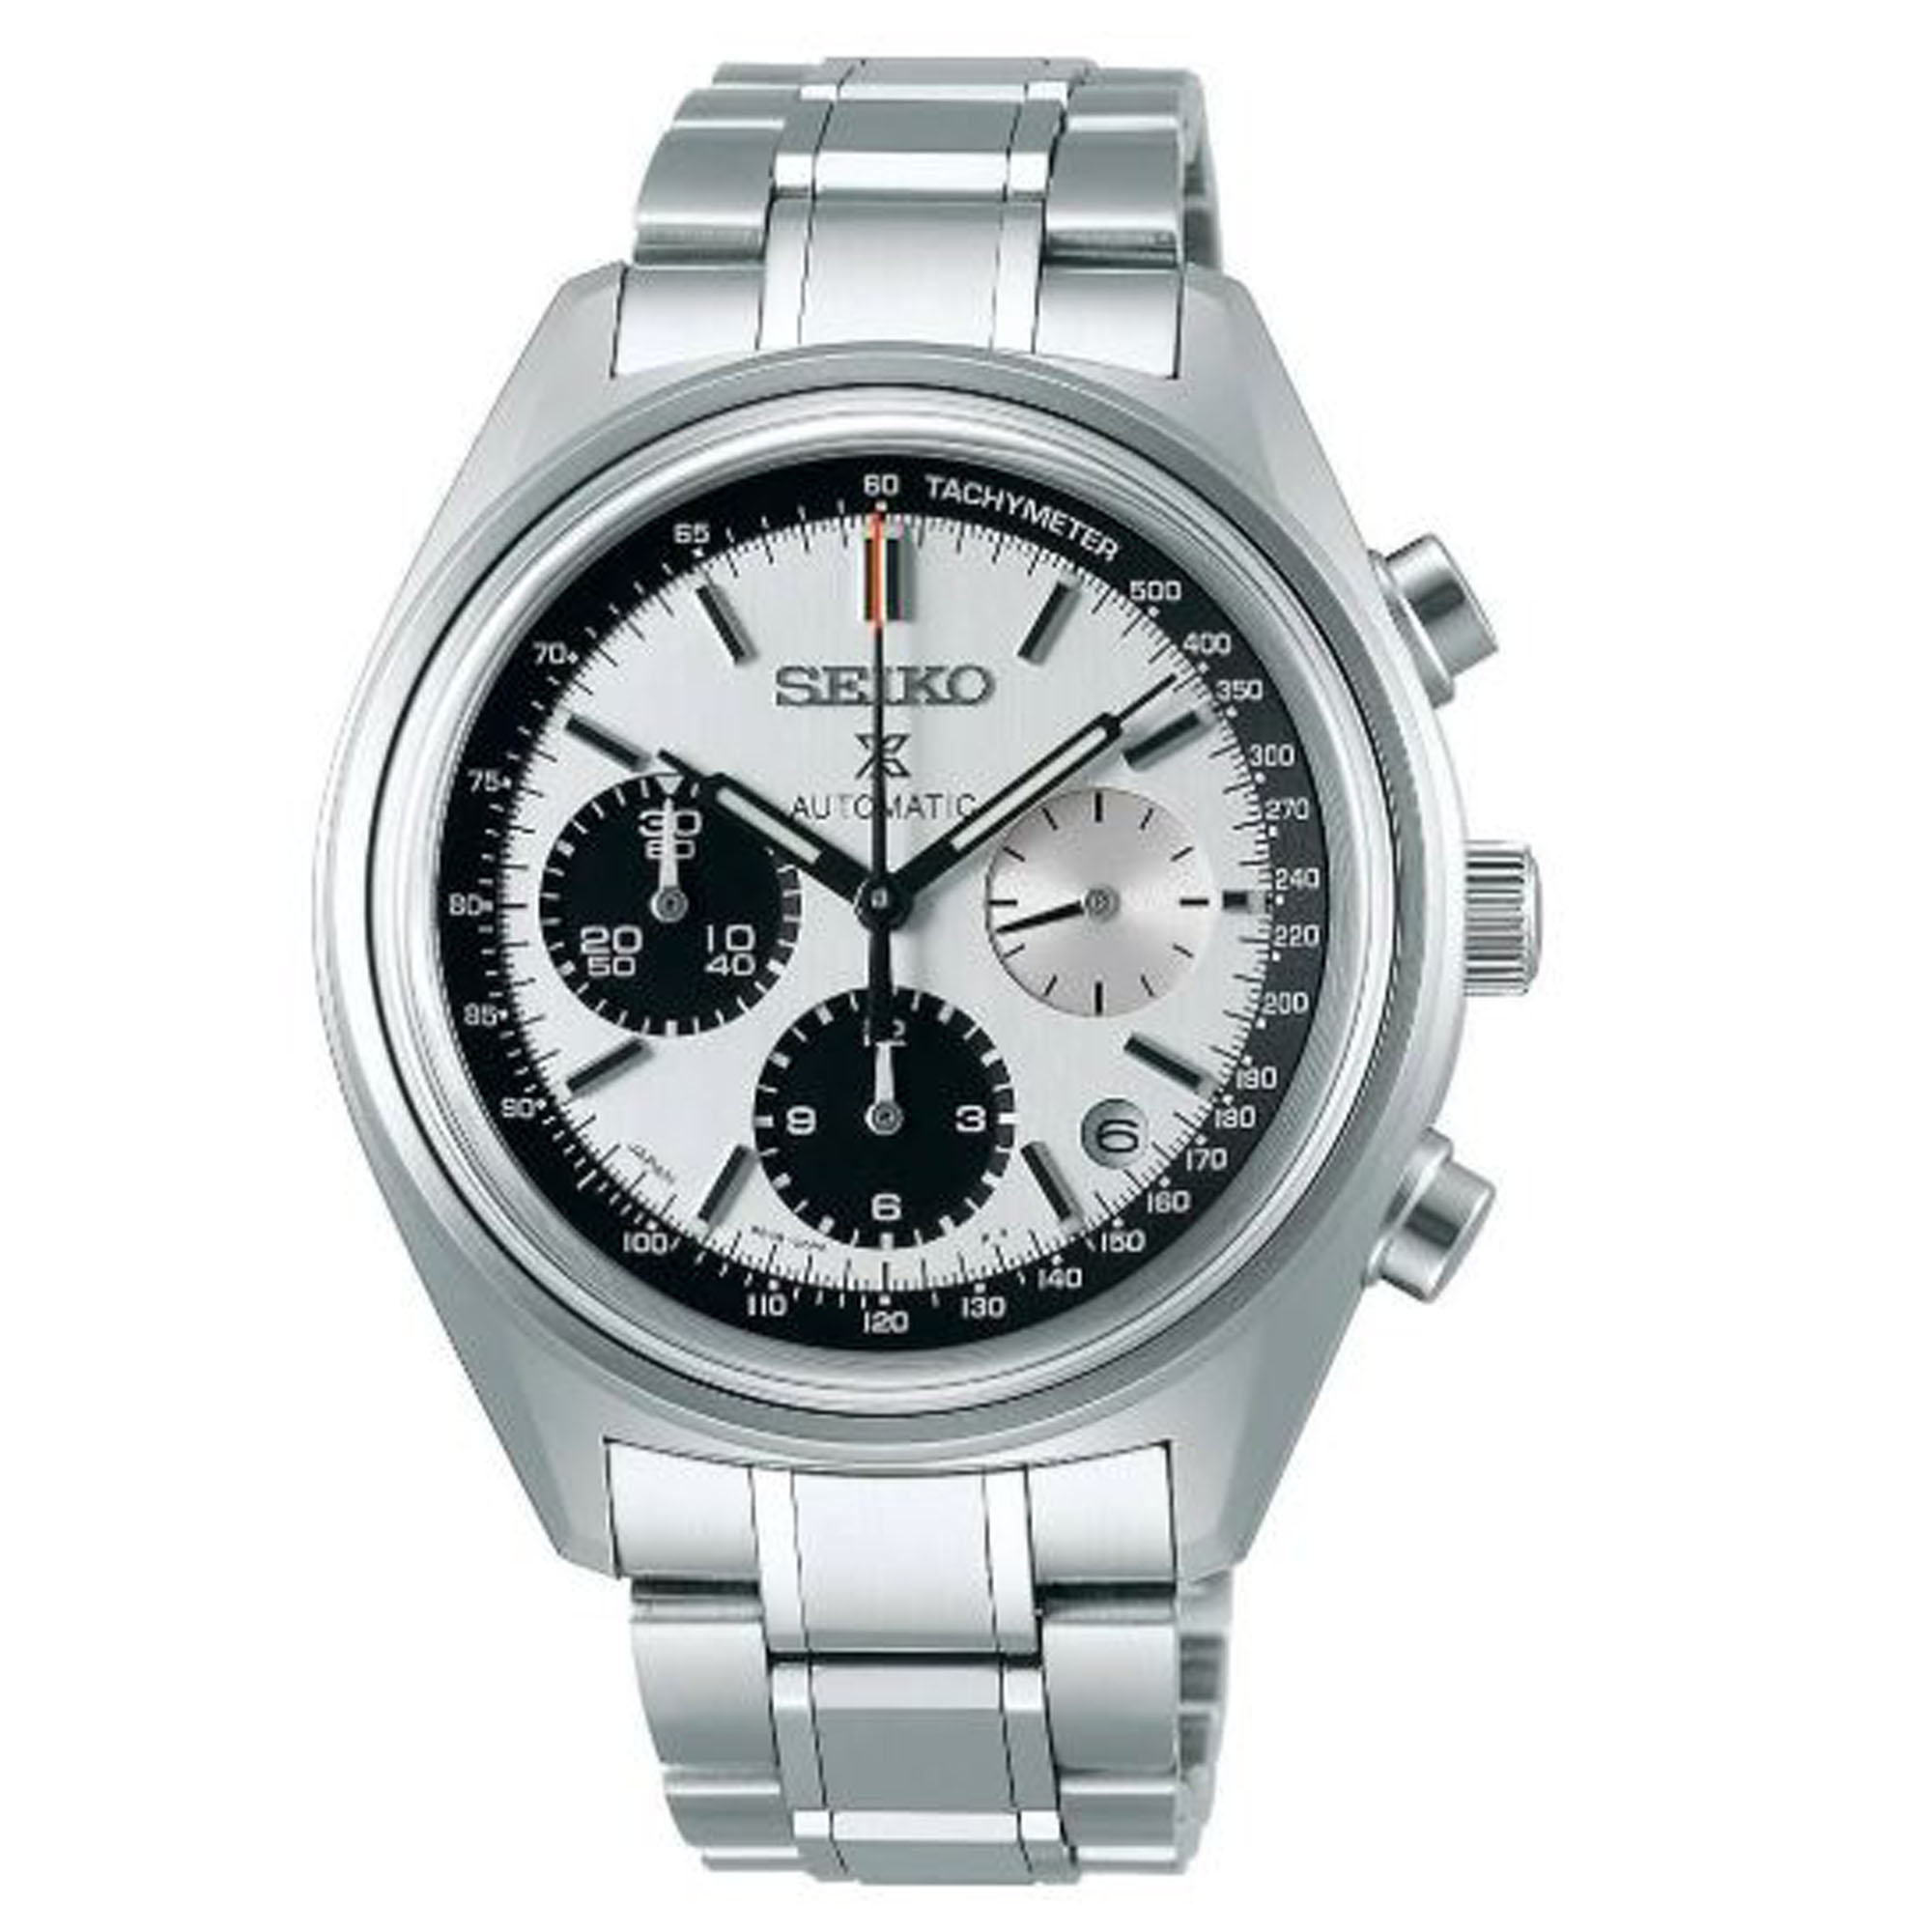 Seiko Limited Edition 50th Anniversary Prospex Automatic White Panda Dial Silver Stainless Steel Chronograph Men's Watch SRQ029J1